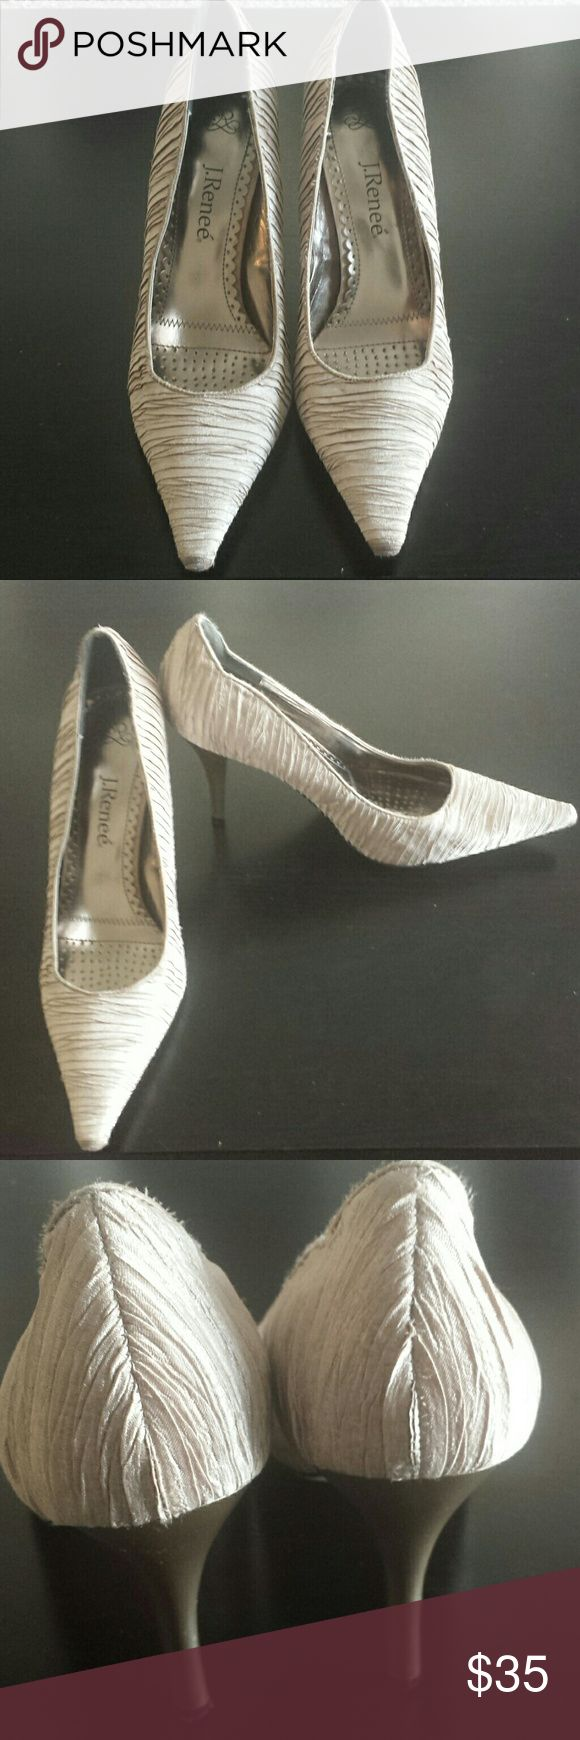 J. Renée champagne color size 11 shoes Like new. J. Renée champagne colored shoes. Great neutral color goes with everything. Size 11. Has a couple of water spots on right shoe. See pics. J. Renée Shoes Heels